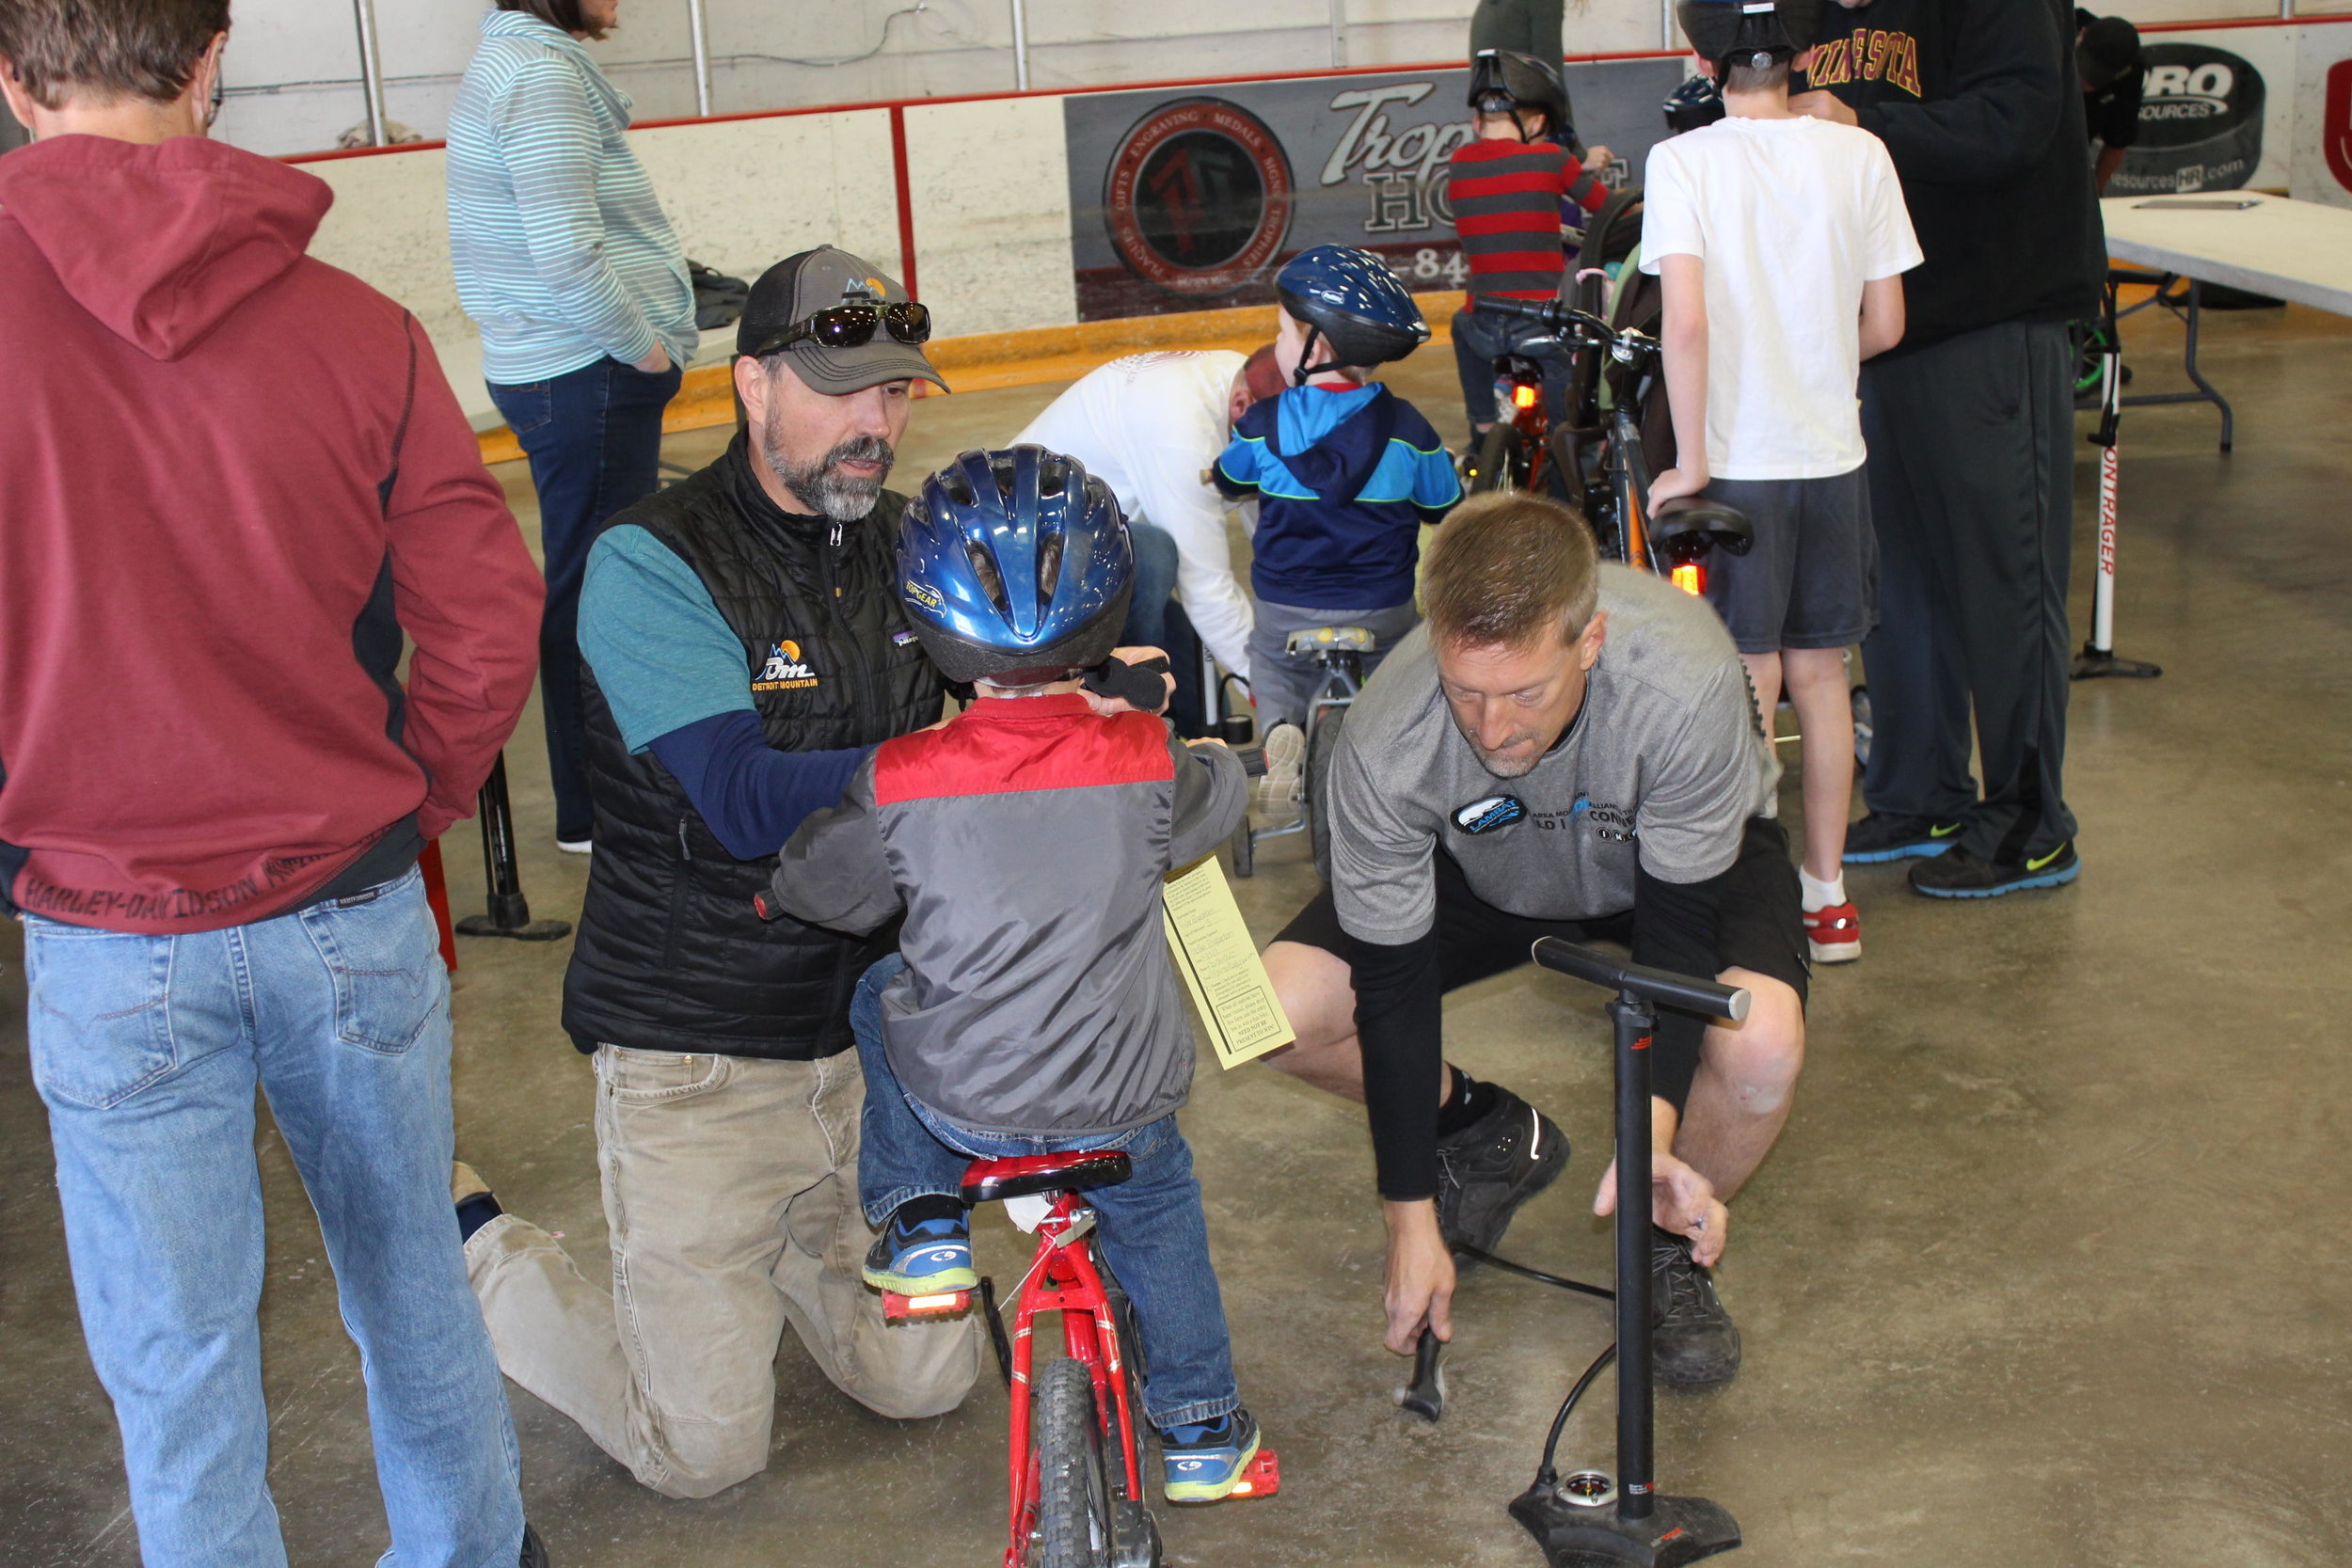 """Jeff Staley of Detroit Lakes (on knees) volunteered on the """"pit crew"""" making sure bikes were in good condition during the 2017 Bike Rodeo in Detroit Lakes. (Nathan Bowe / Tribune)"""